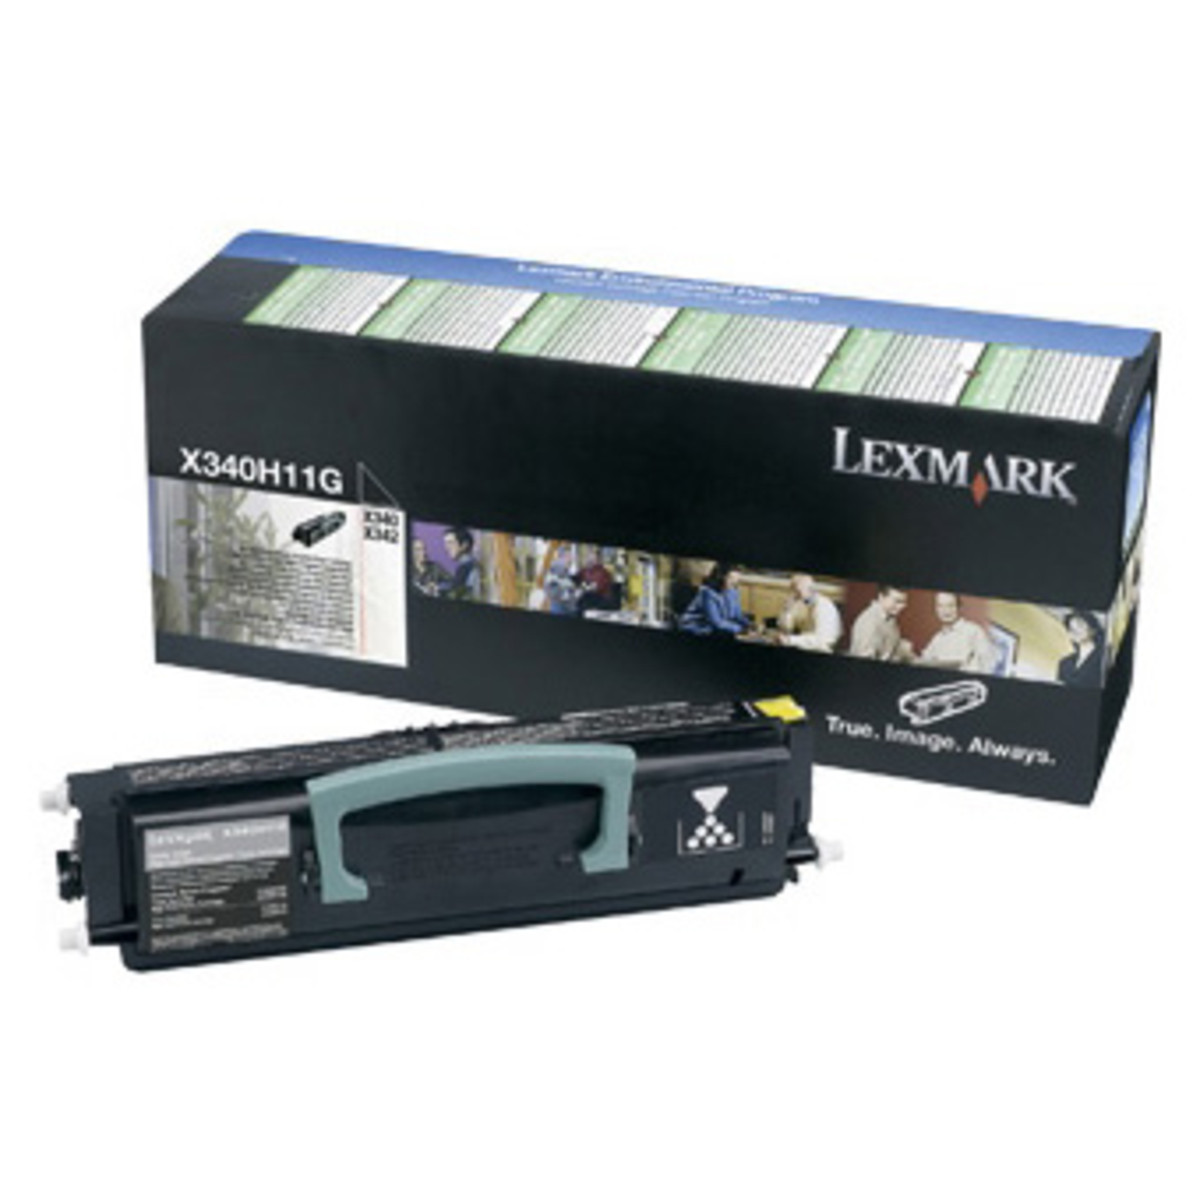 Lexmark X340H11G Black Prebate Toner Cartridge